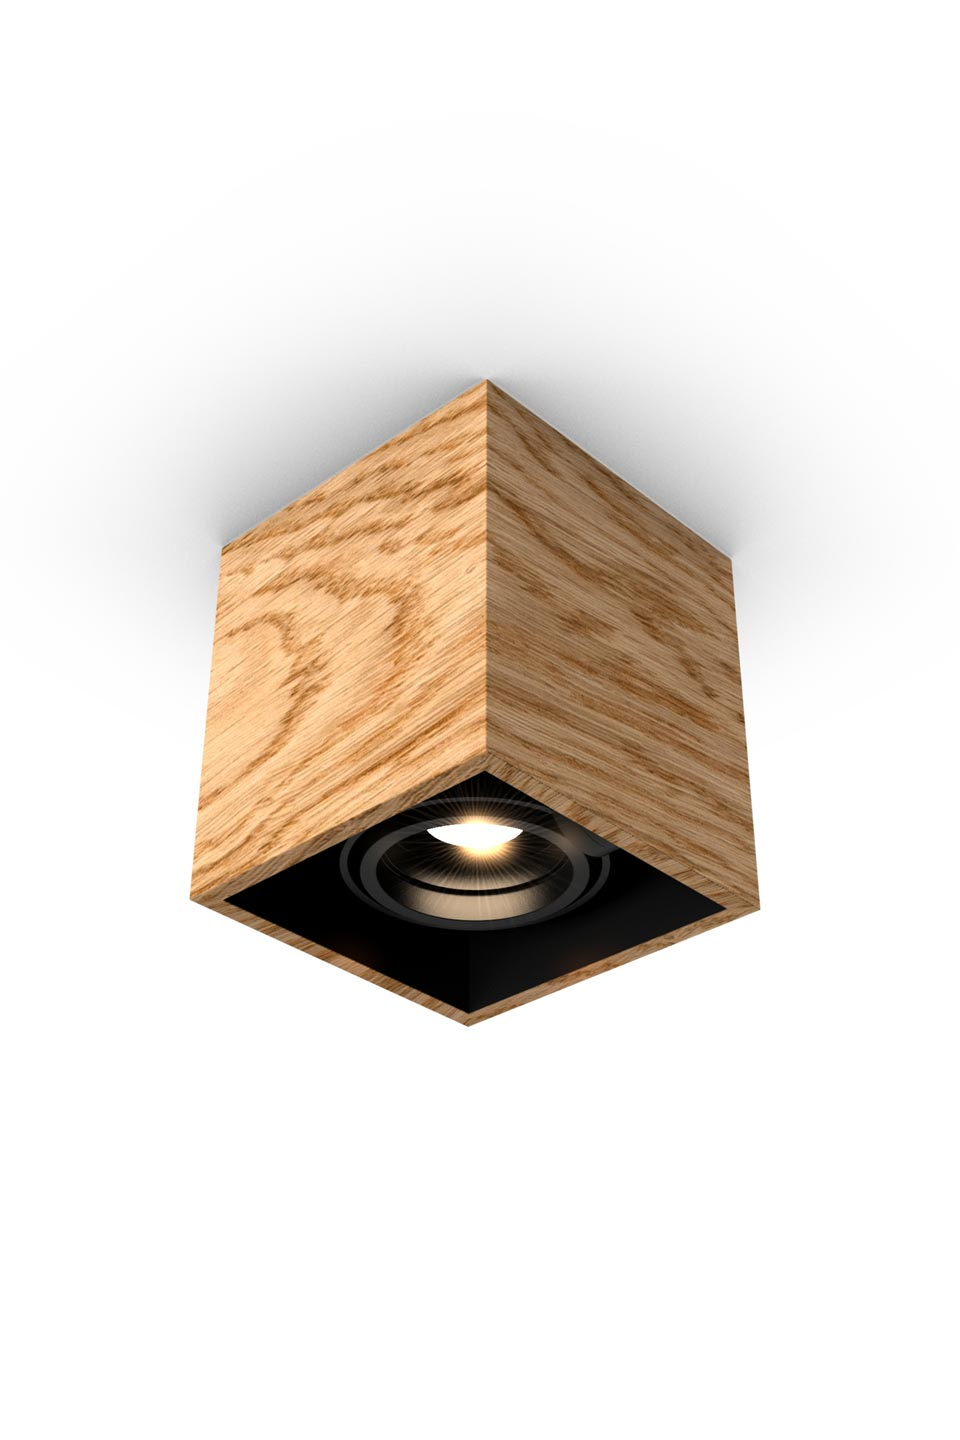 Mini Chalet En Bois spotlight in wood and led, available in 1, 2 or 3 lights